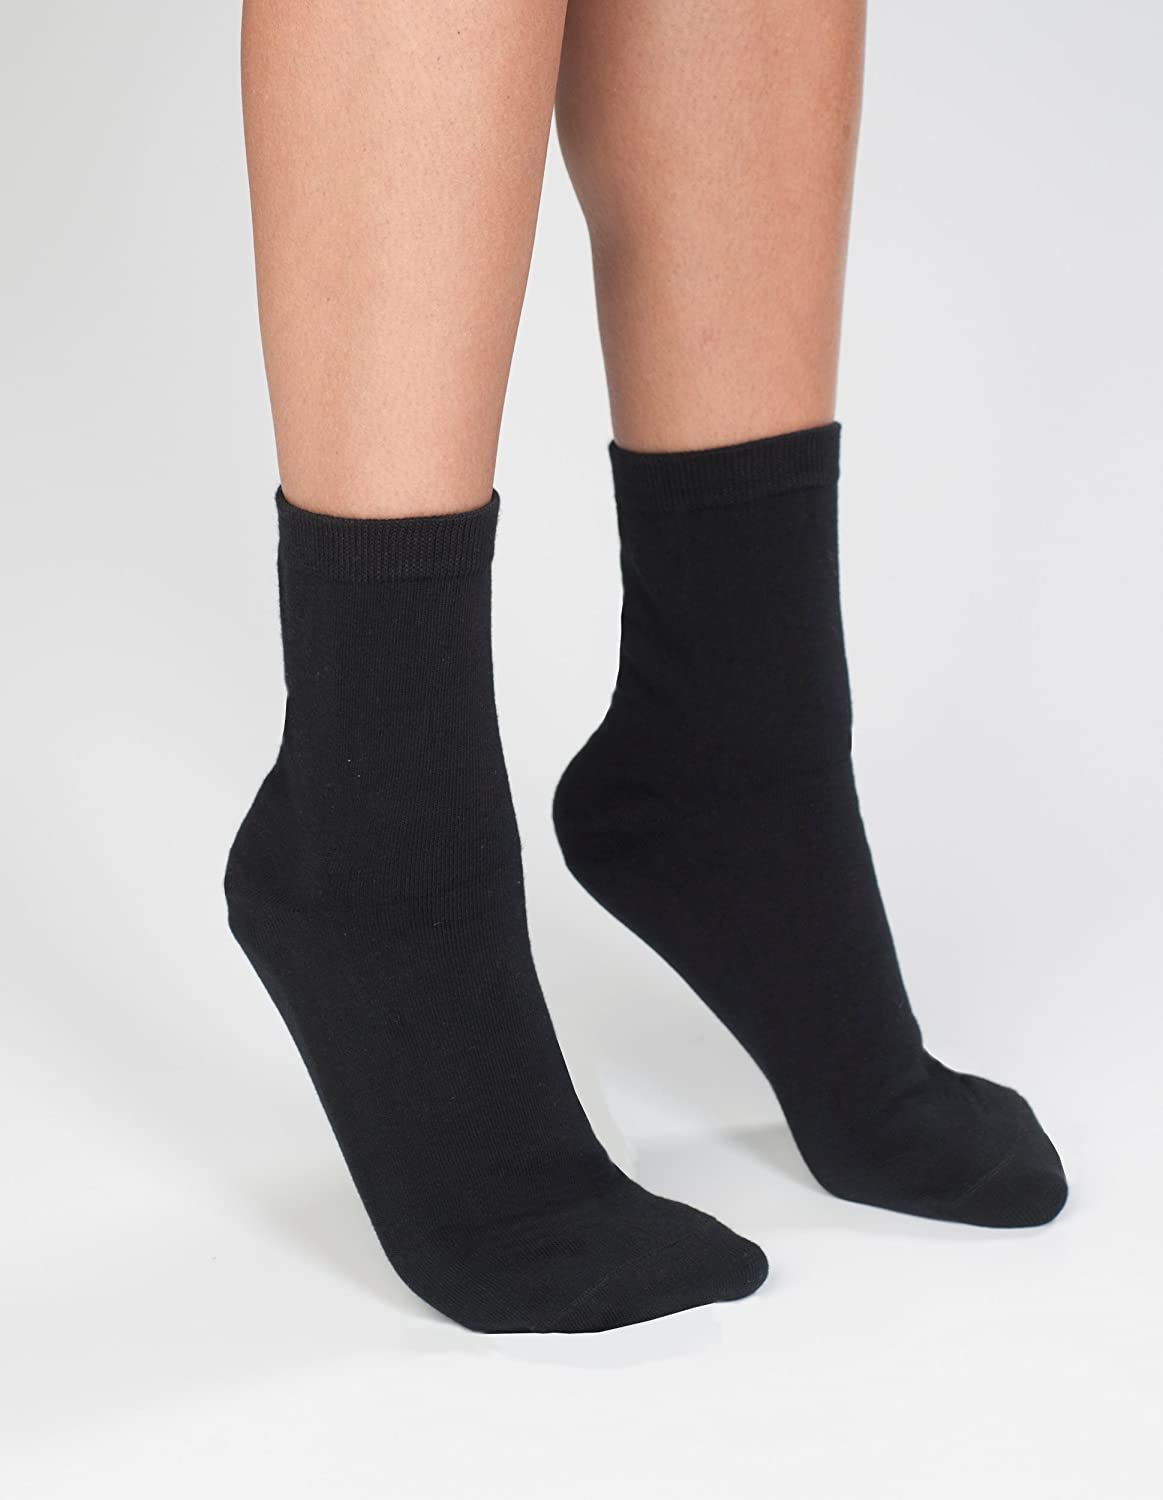 1-Pack Cheap super special price Wearever Men's Limited time cheap sale Neuropathy Gel-Lined Ess with Socks Padded